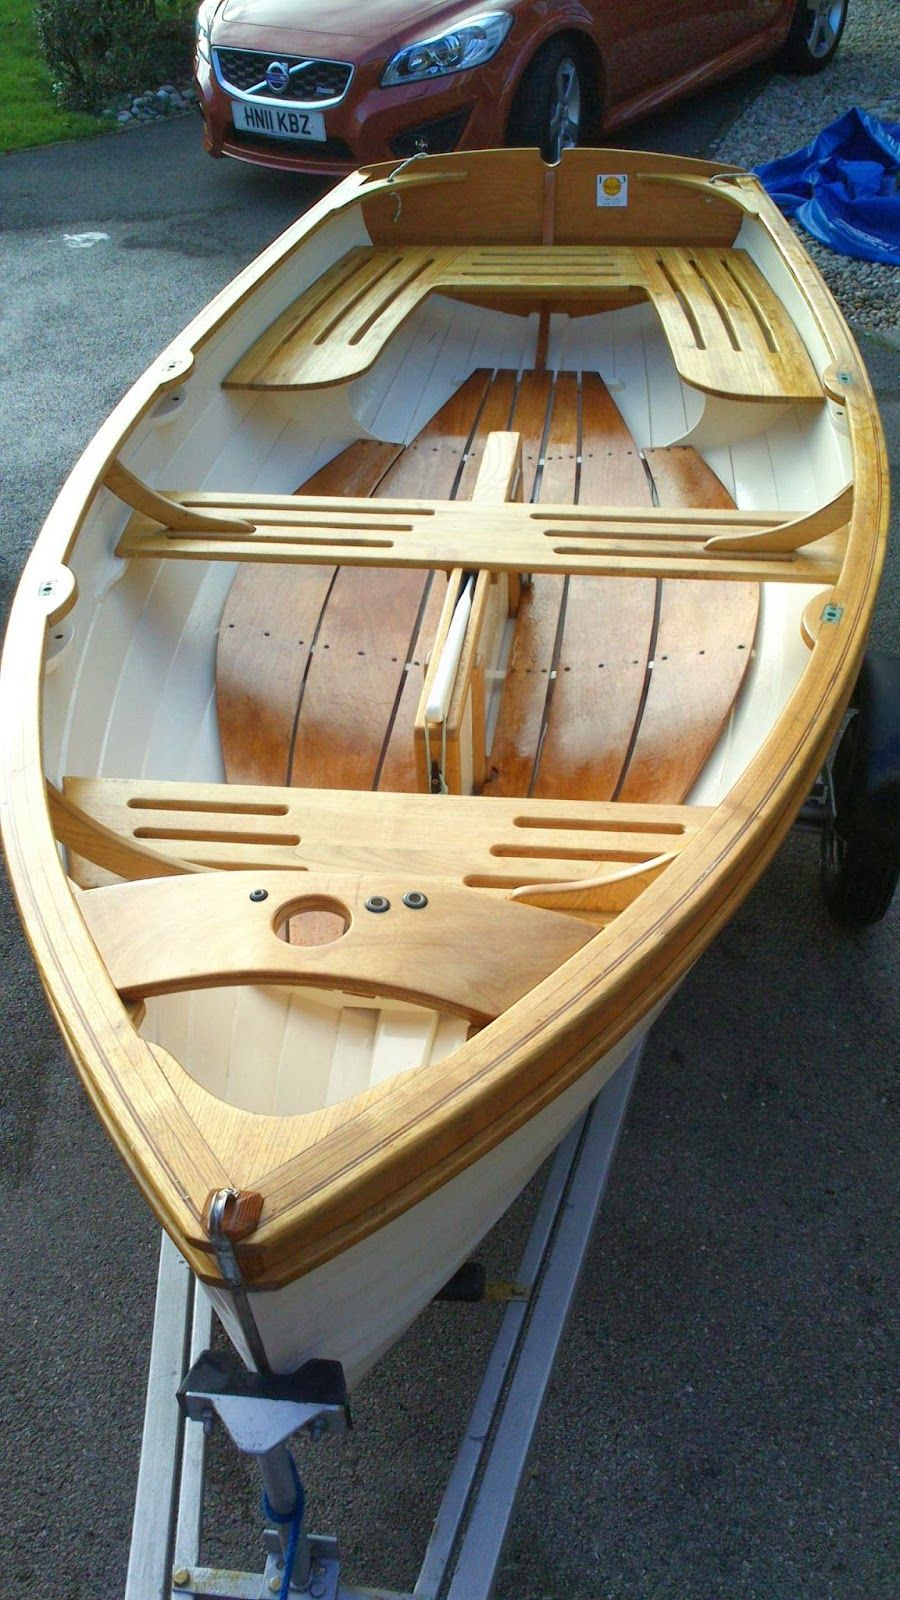 Oughtred design, the Guillemot - Google Search | WOODEN ...